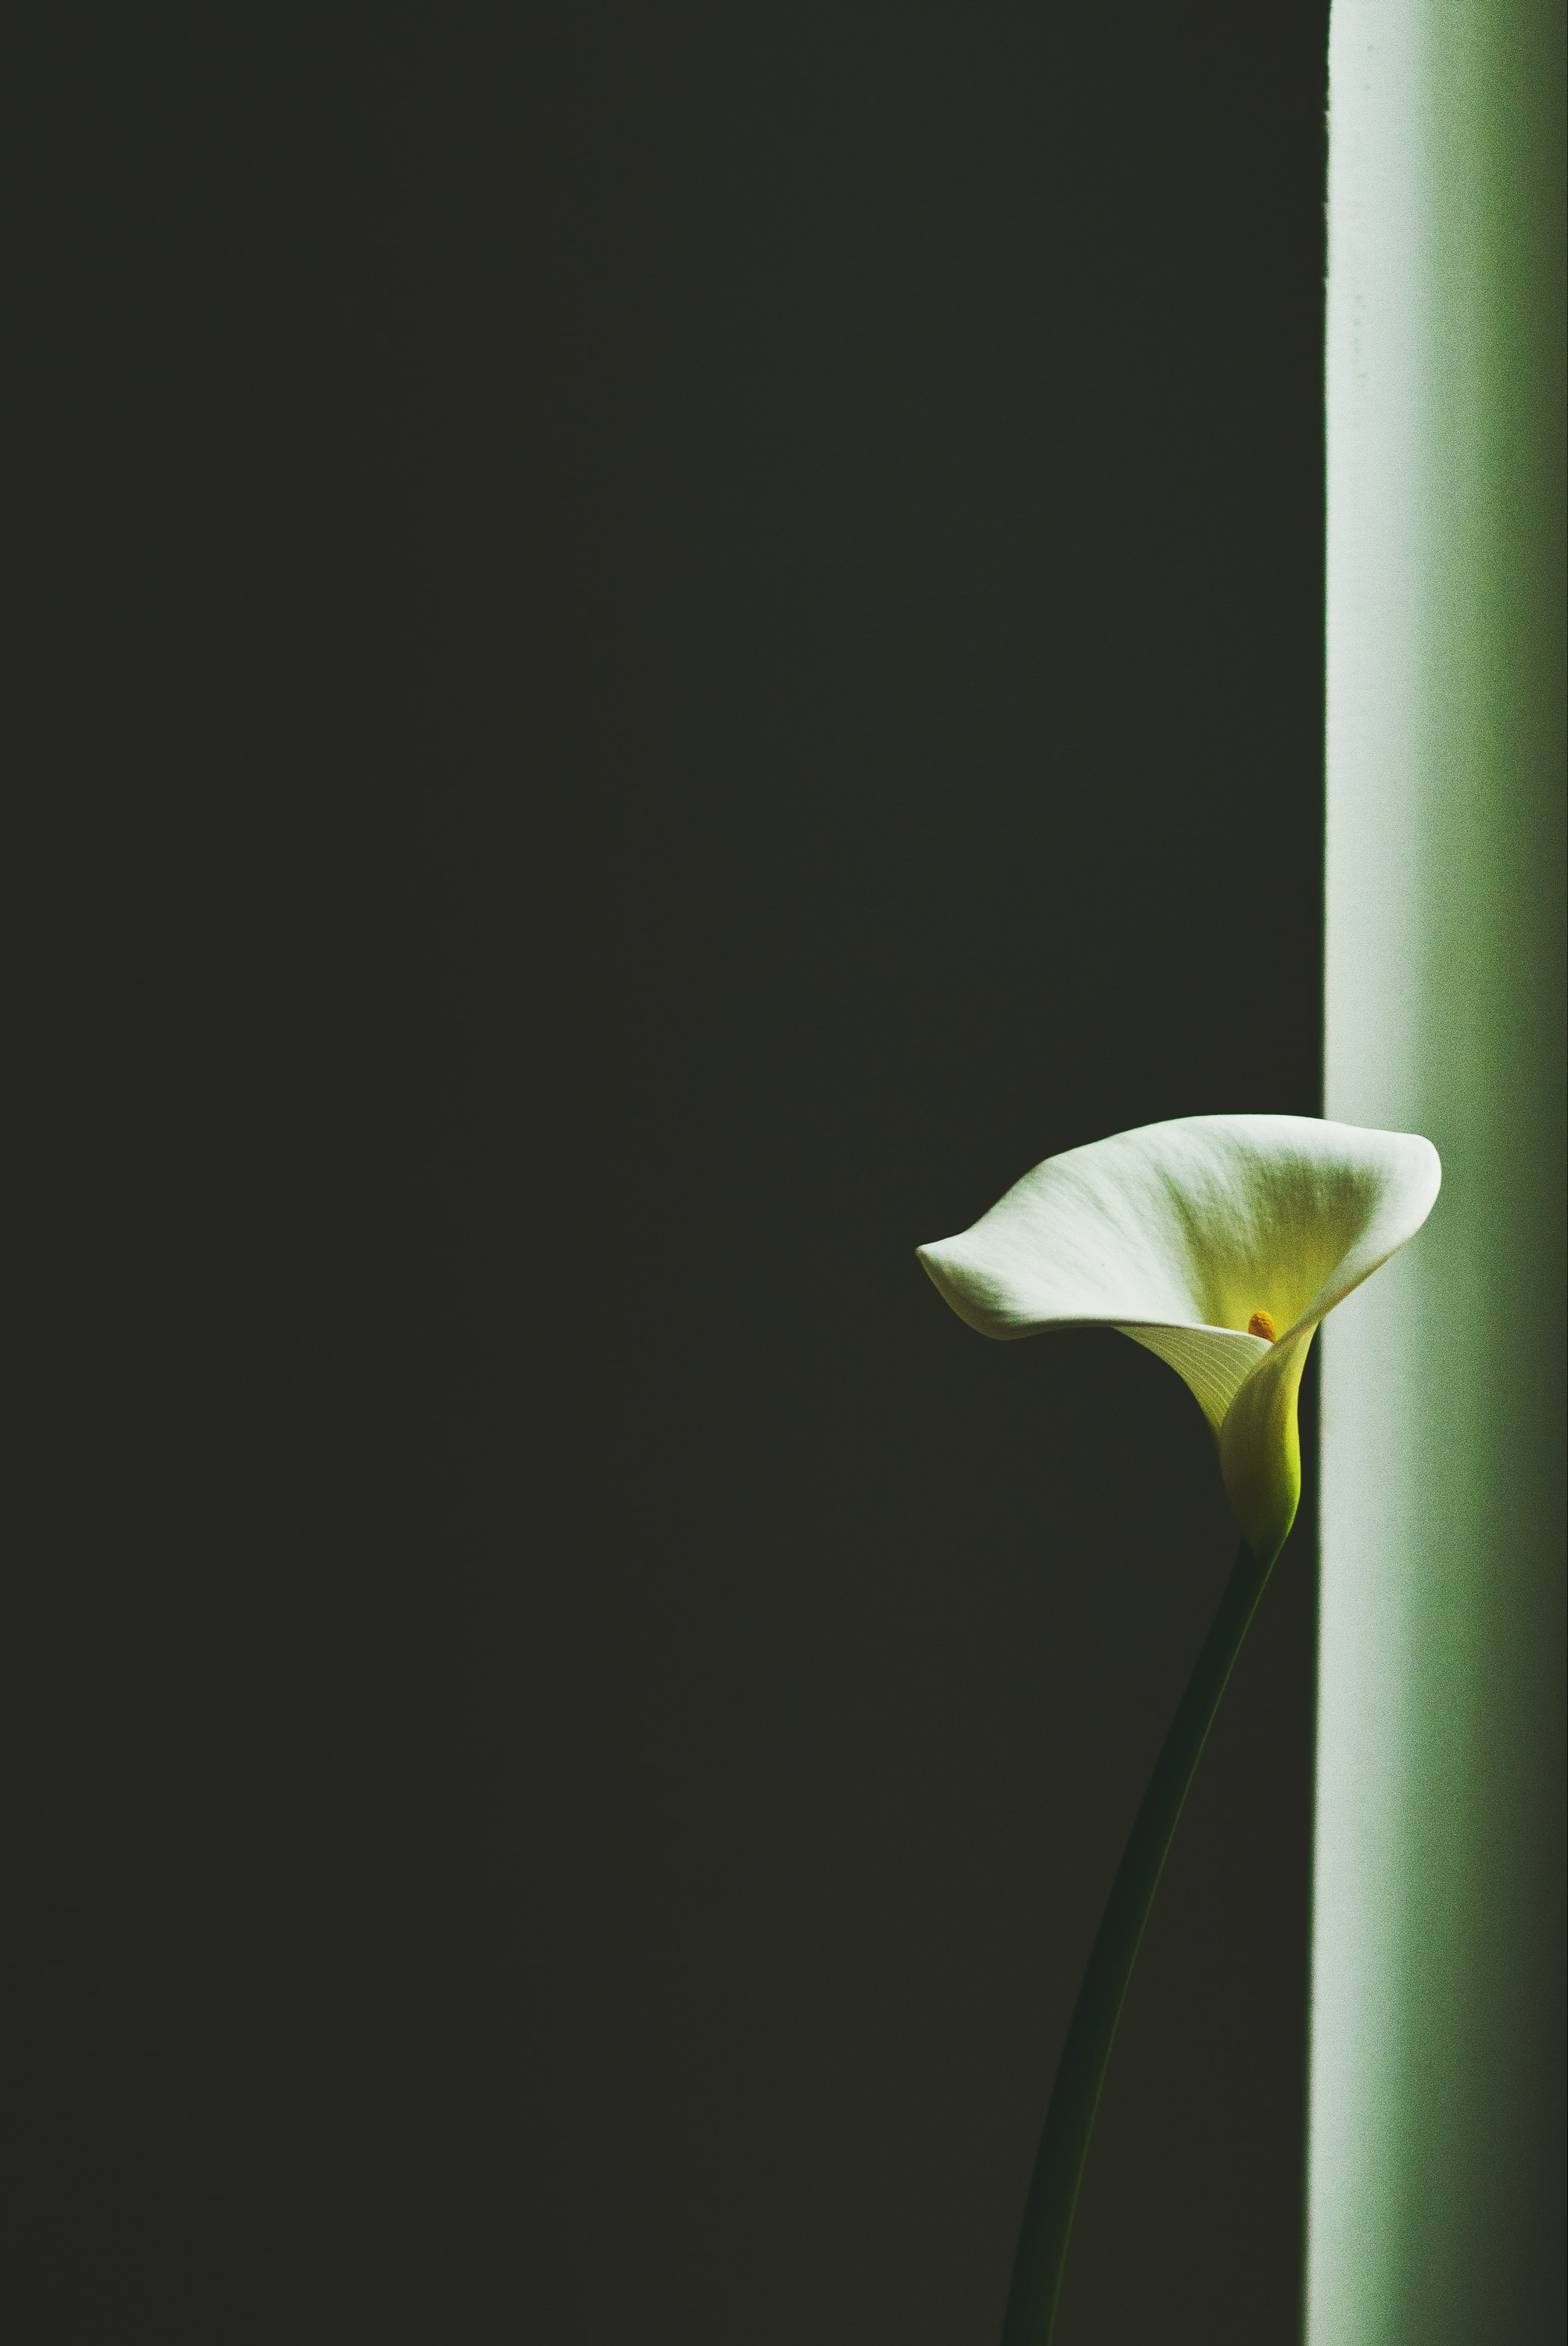 closeup photo of white peace lily near the window